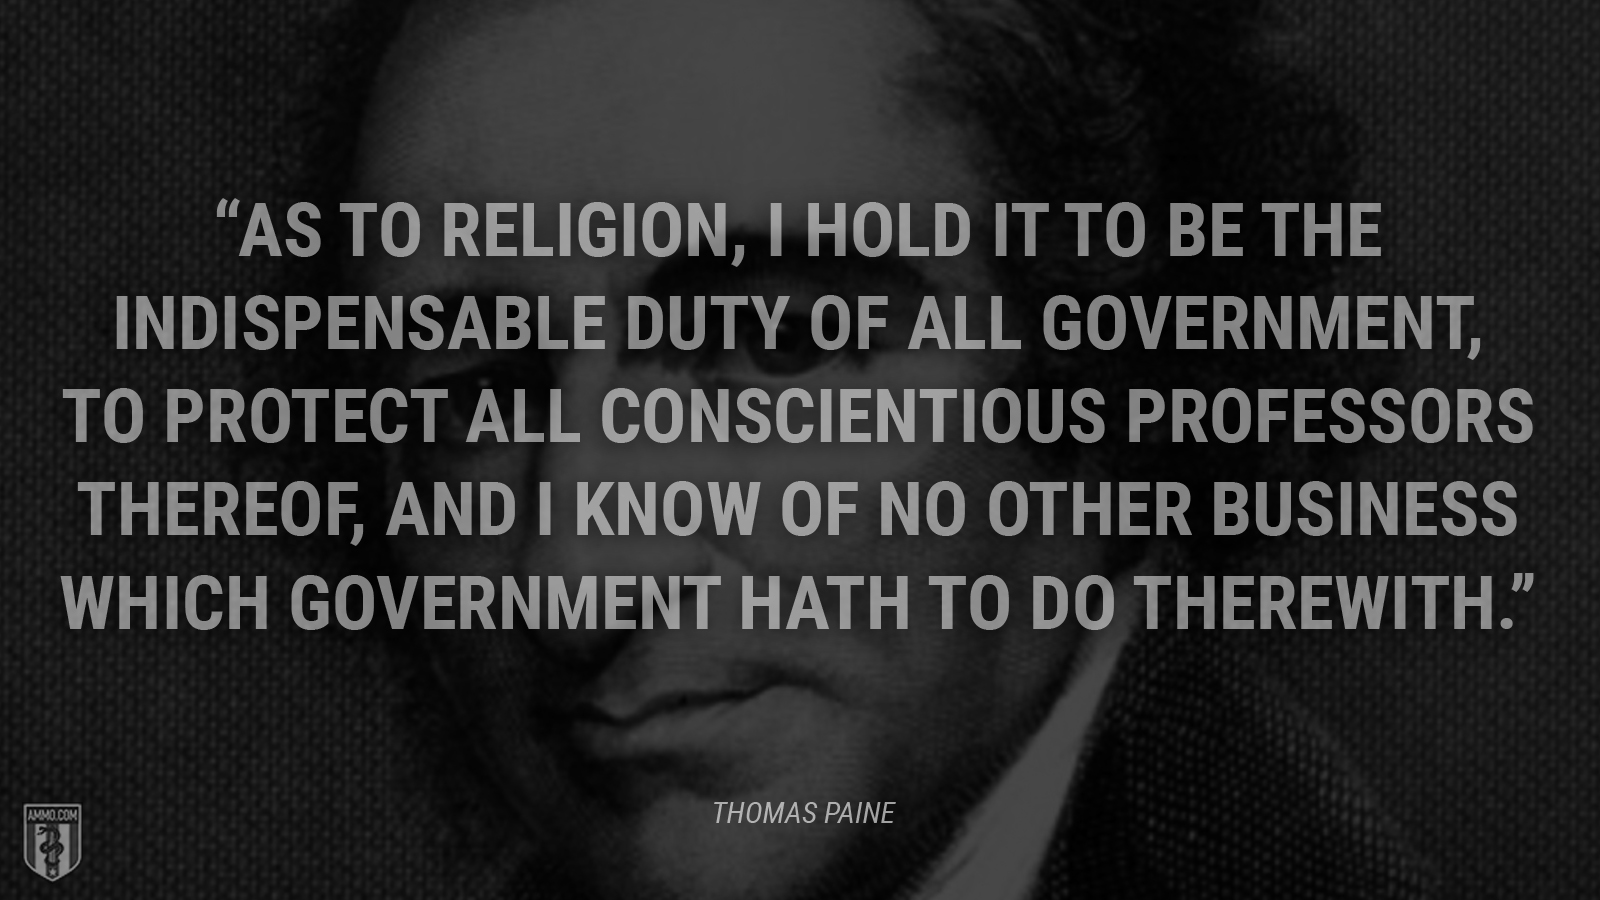 """As to religion, I hold it to be the indispensable duty of all government, to protect all conscientious professors thereof, and I know of no other business which government hath to do therewith."" - Thomas Paine"